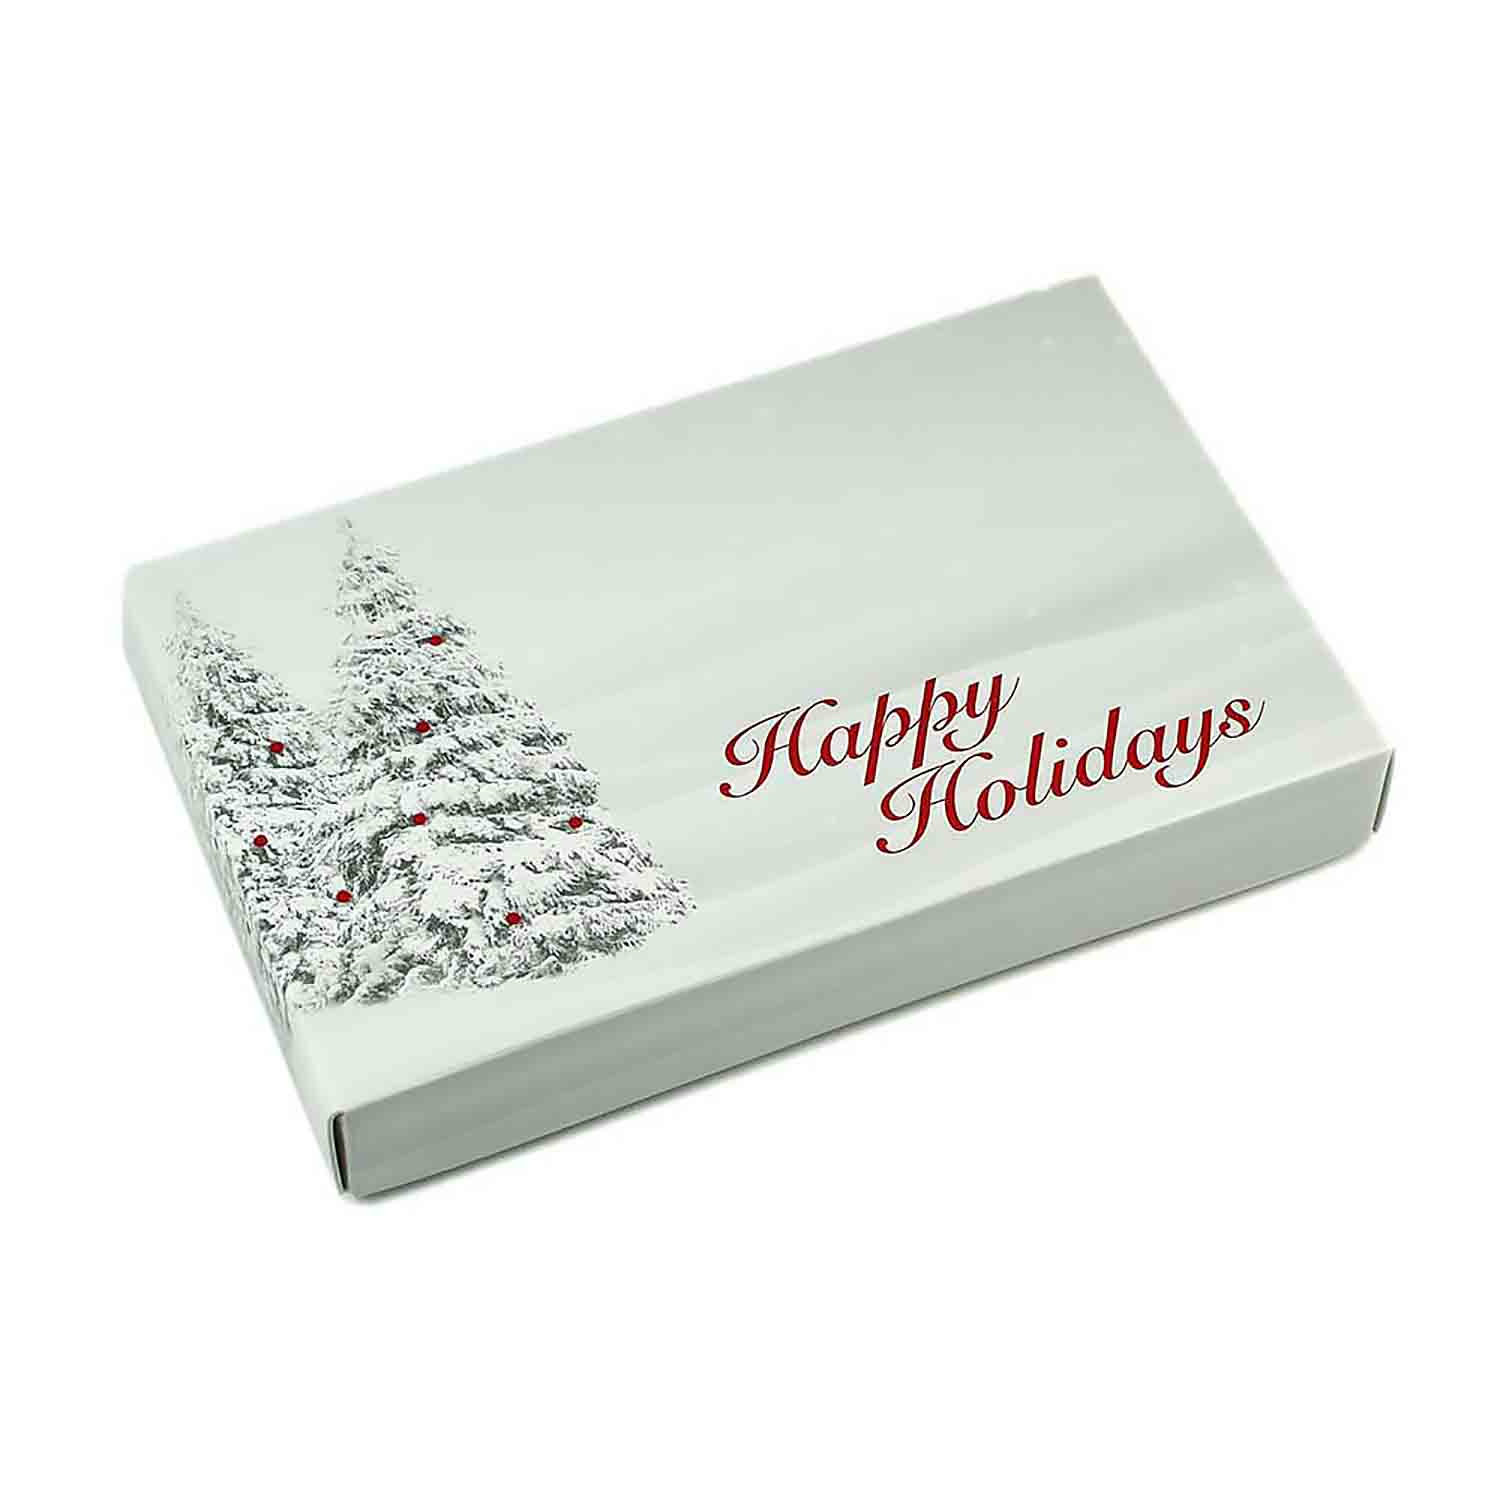 1/2 lb. Happy Holidays Candy Box